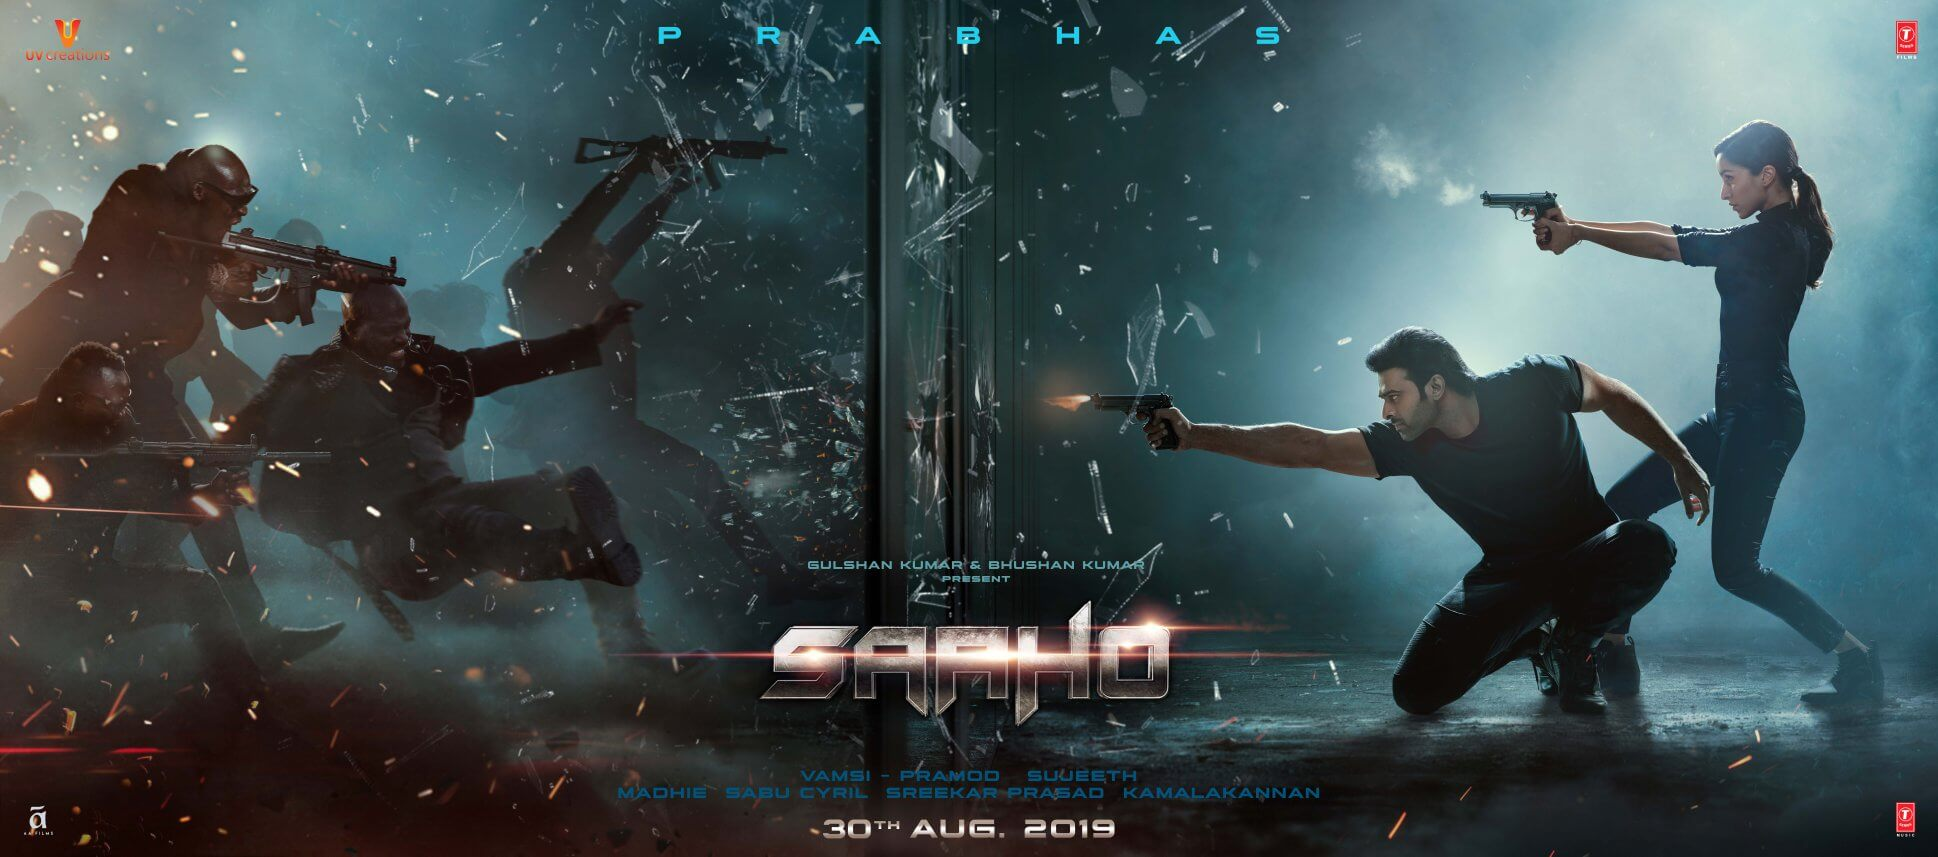 Film poster Indian blockbuster Saaho